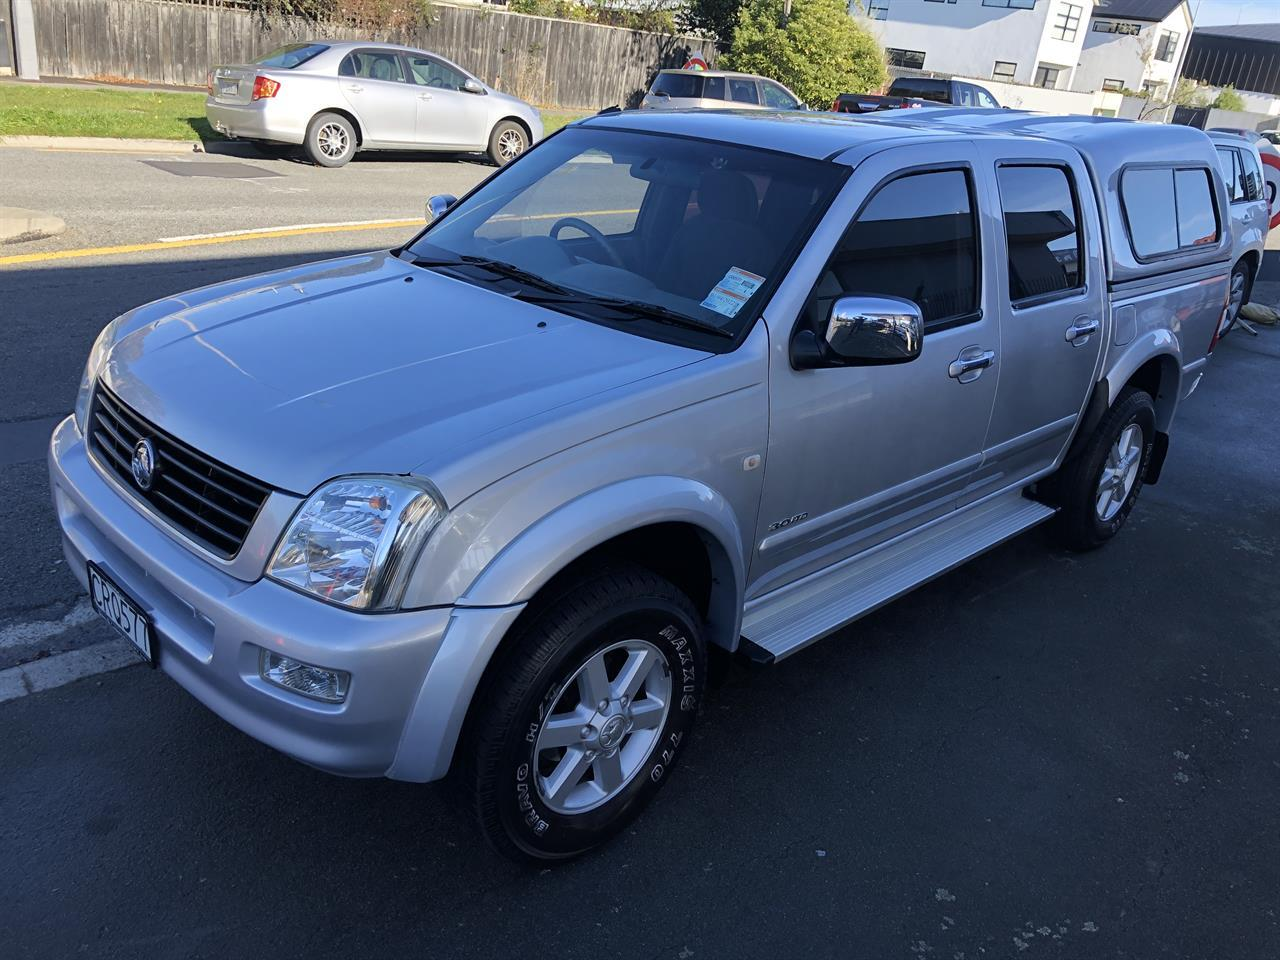 image-5, 2005 Holden Rodeo LT 2WD D/CAB at Christchurch